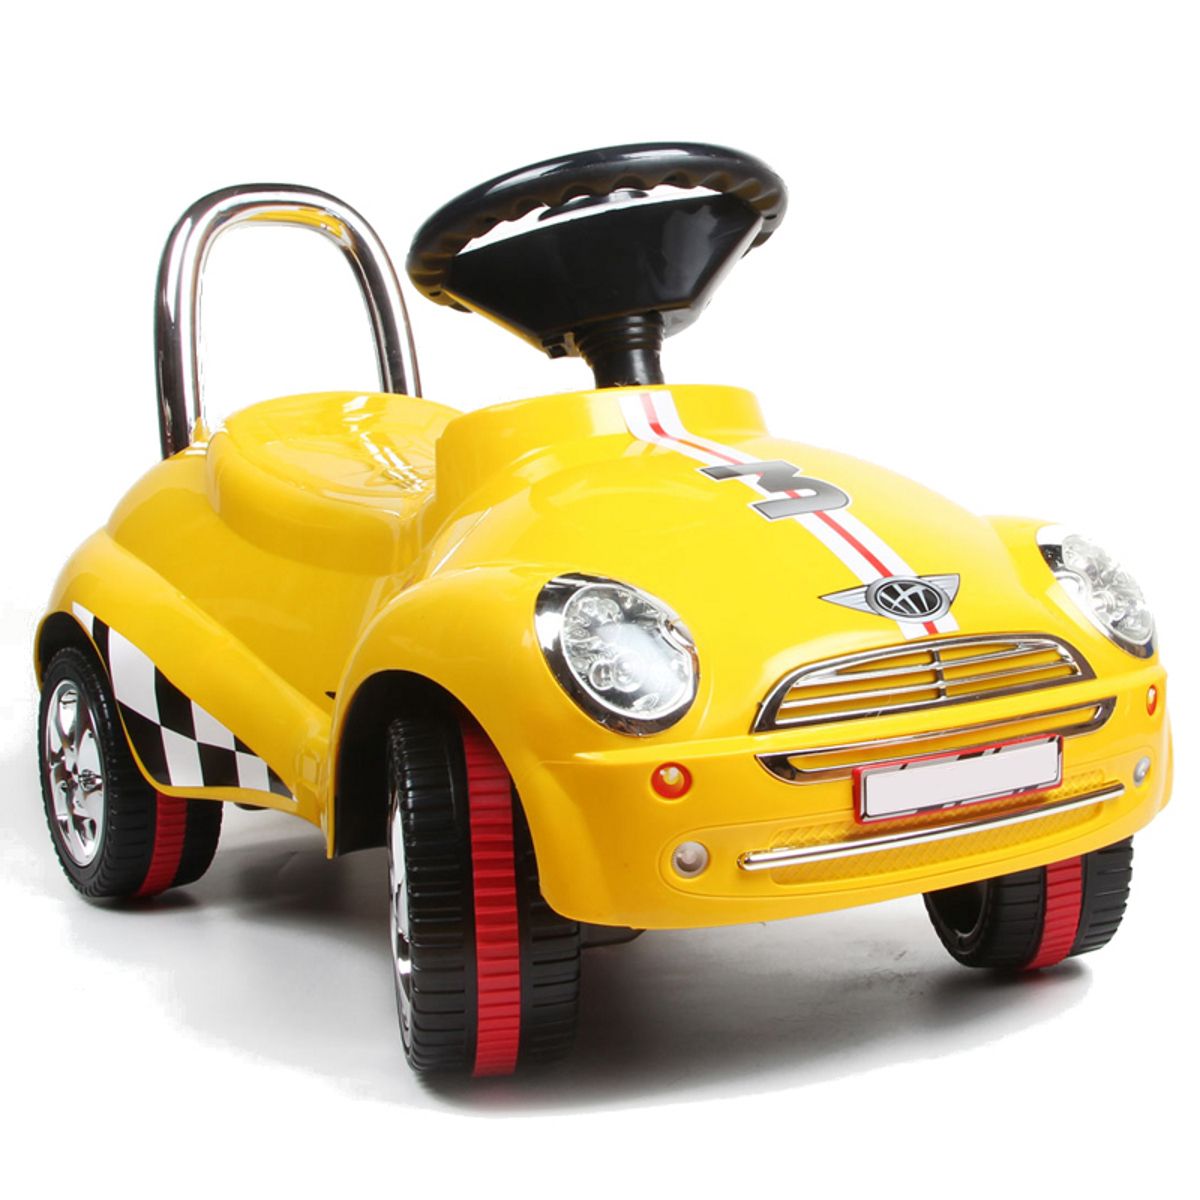 POCO DIVO Ride On Car Toy 3-in-1 Walker Scooter Pulling Cart with Sound & Light by